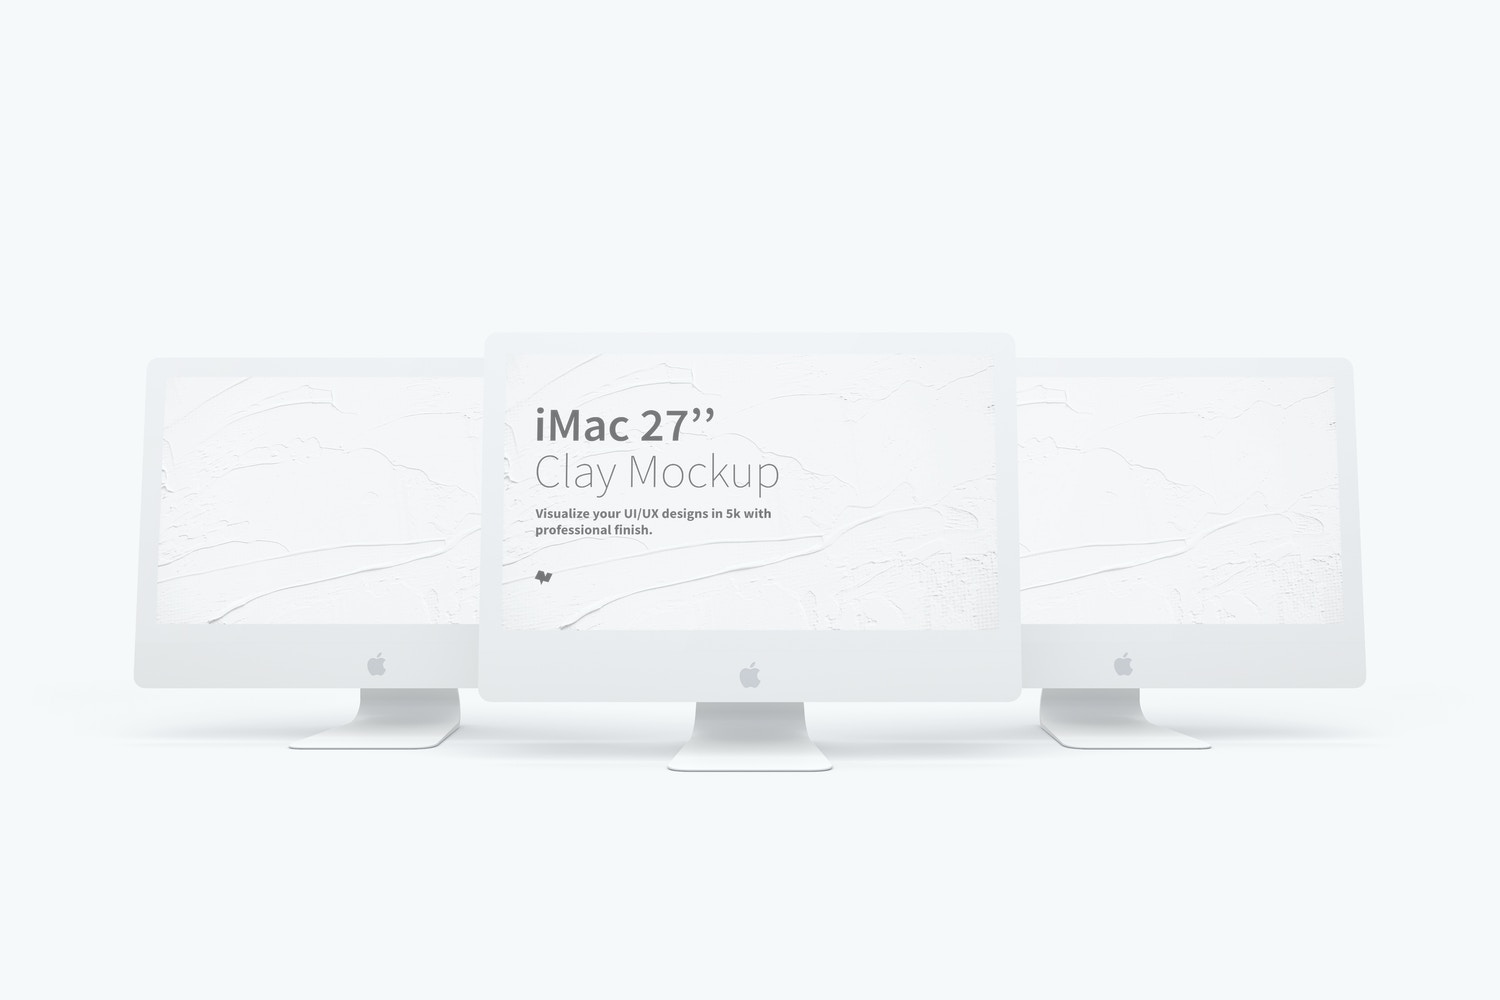 "Clay iMac 27"" Mockup 02 by Original Mockups on Original Mockups"